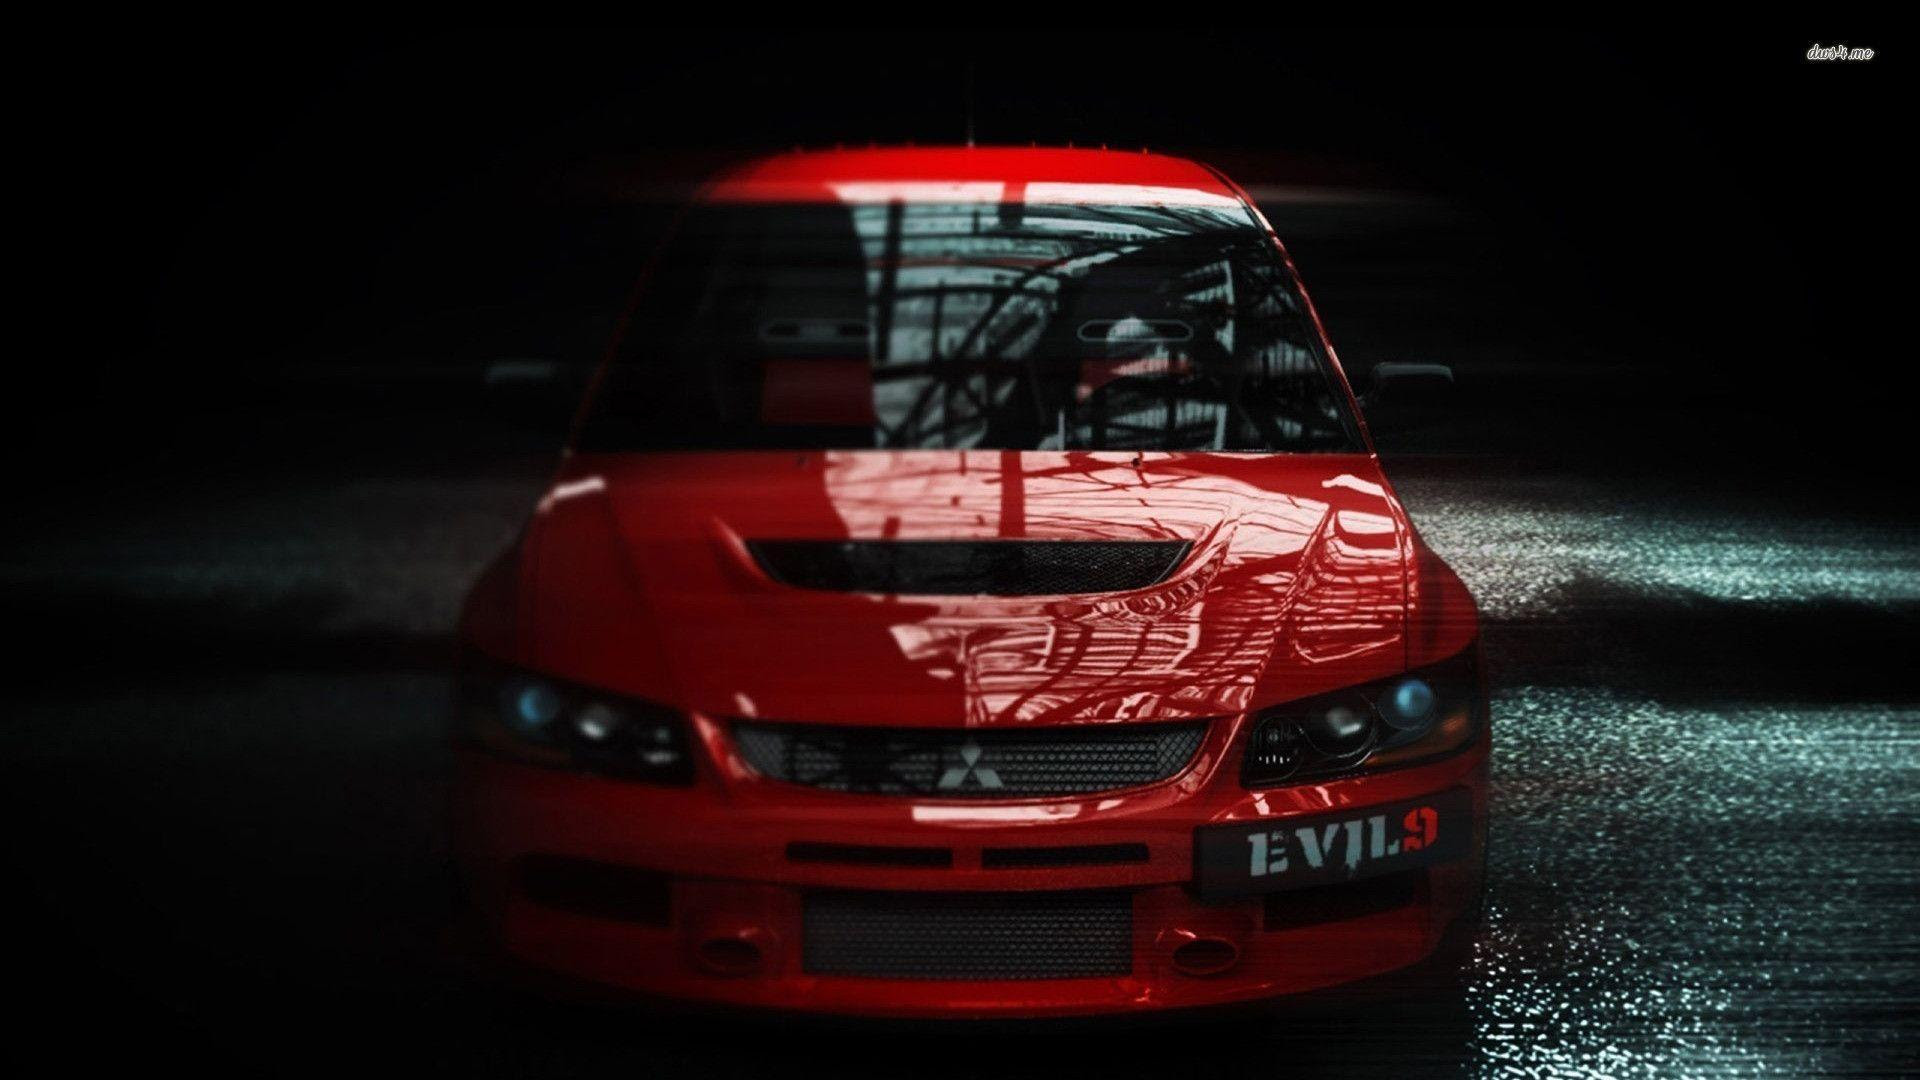 Mitsubishi Lancer Evolution Wallpapers  Wallpaper Cave